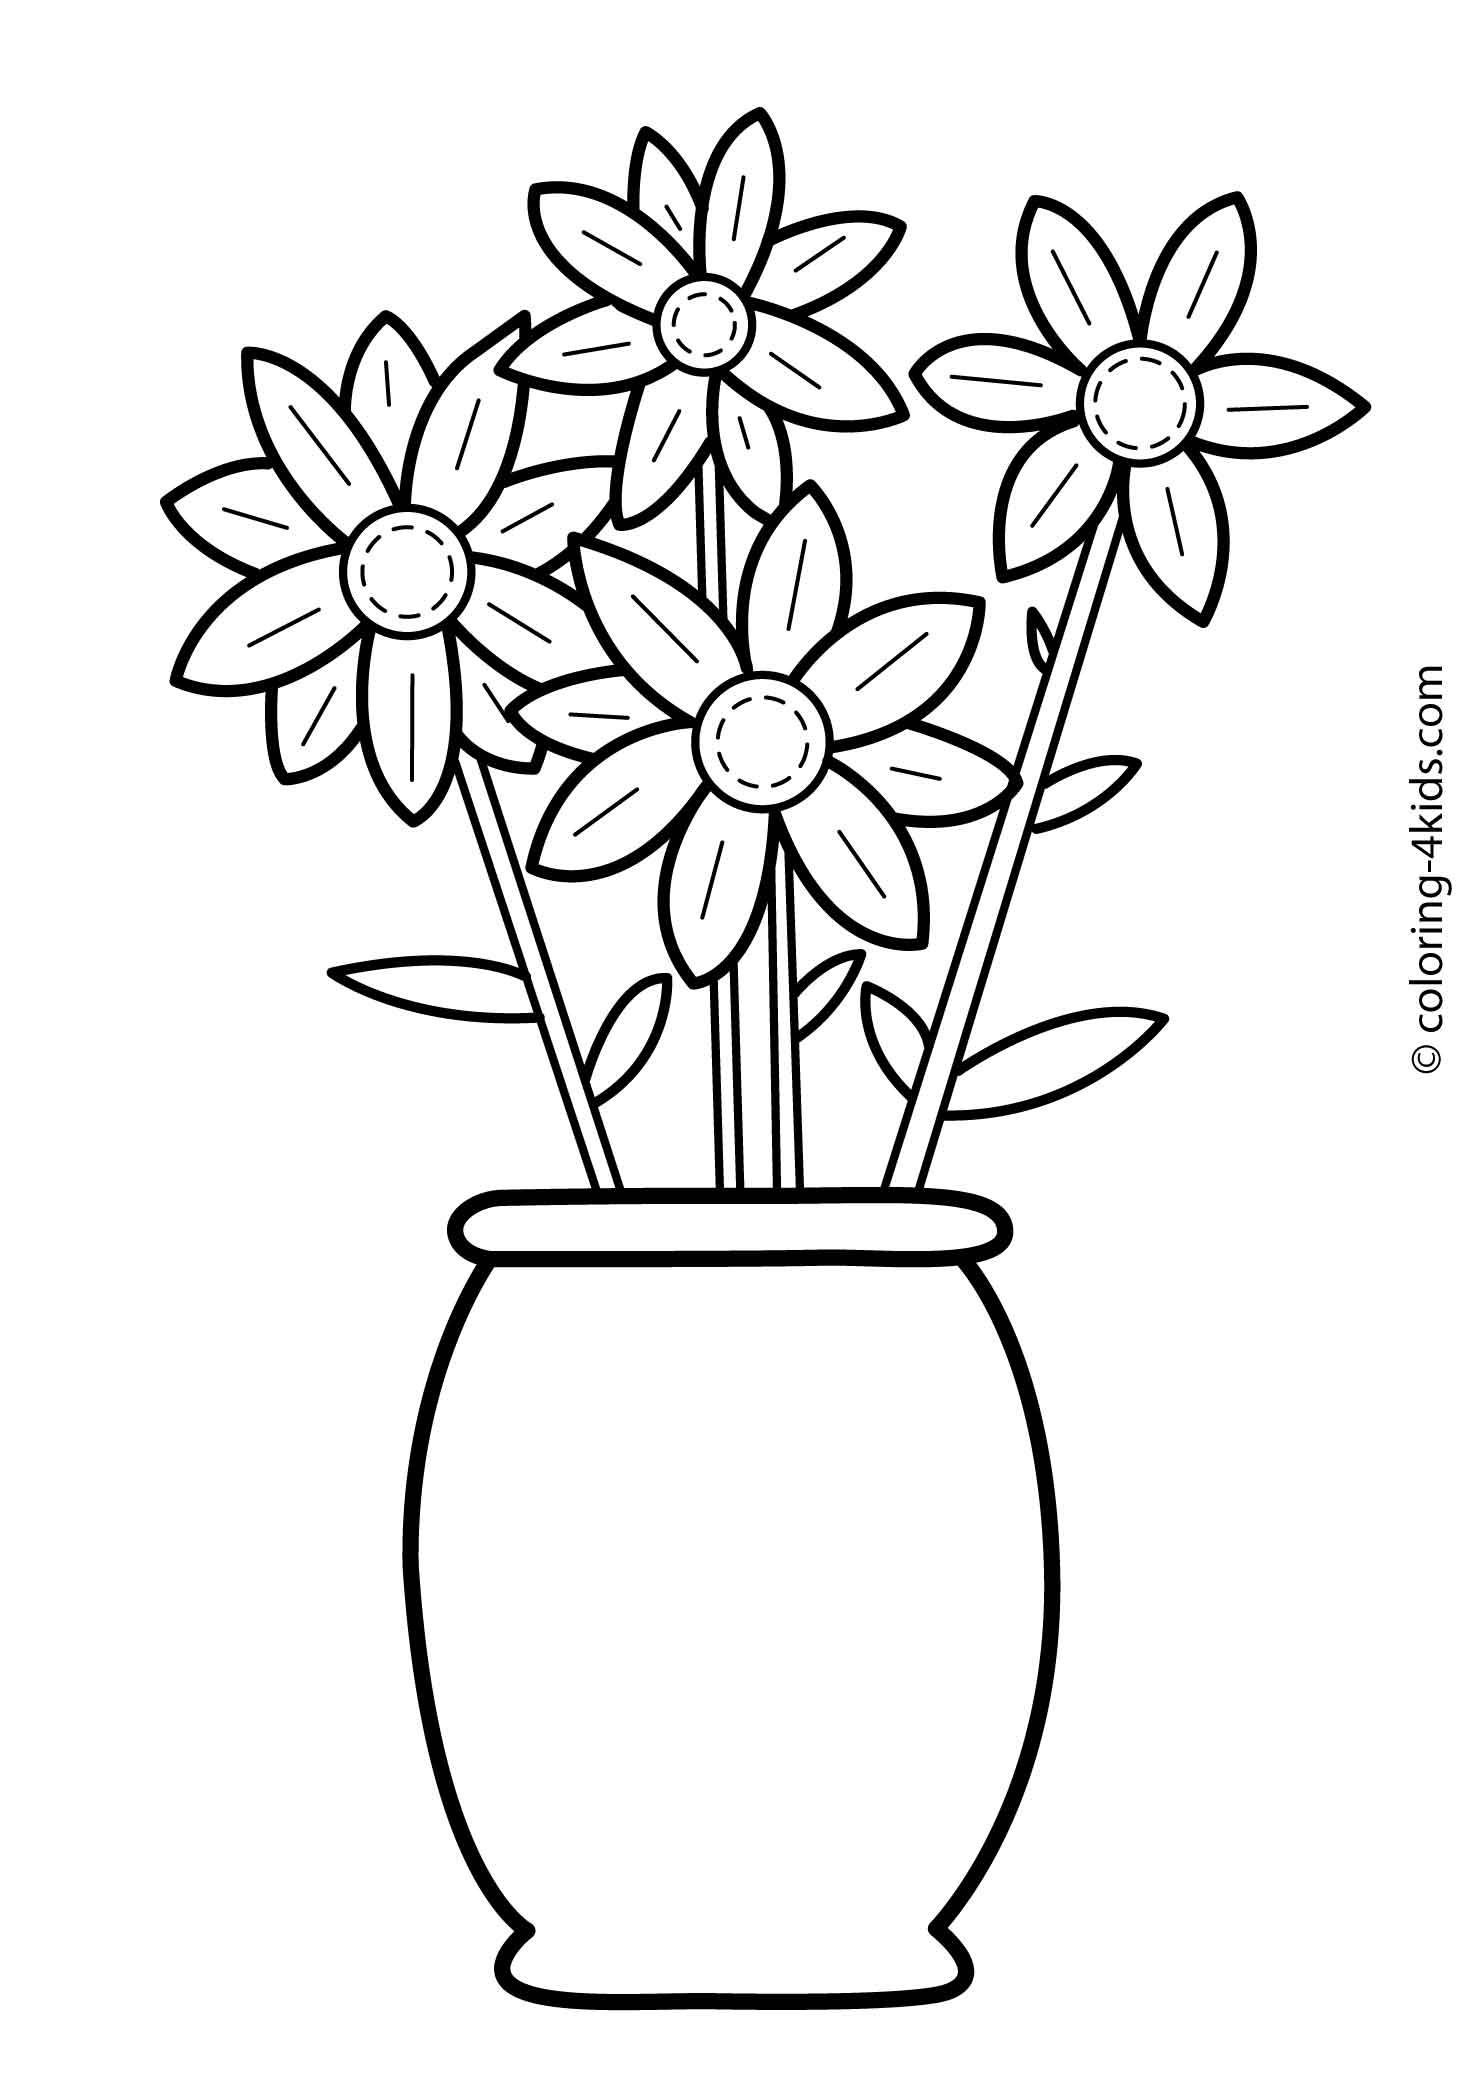 Flowers Coloring Pages For Kids Printable 6 Flower Drawing Flower Coloring Sheets Flower Coloring Pages